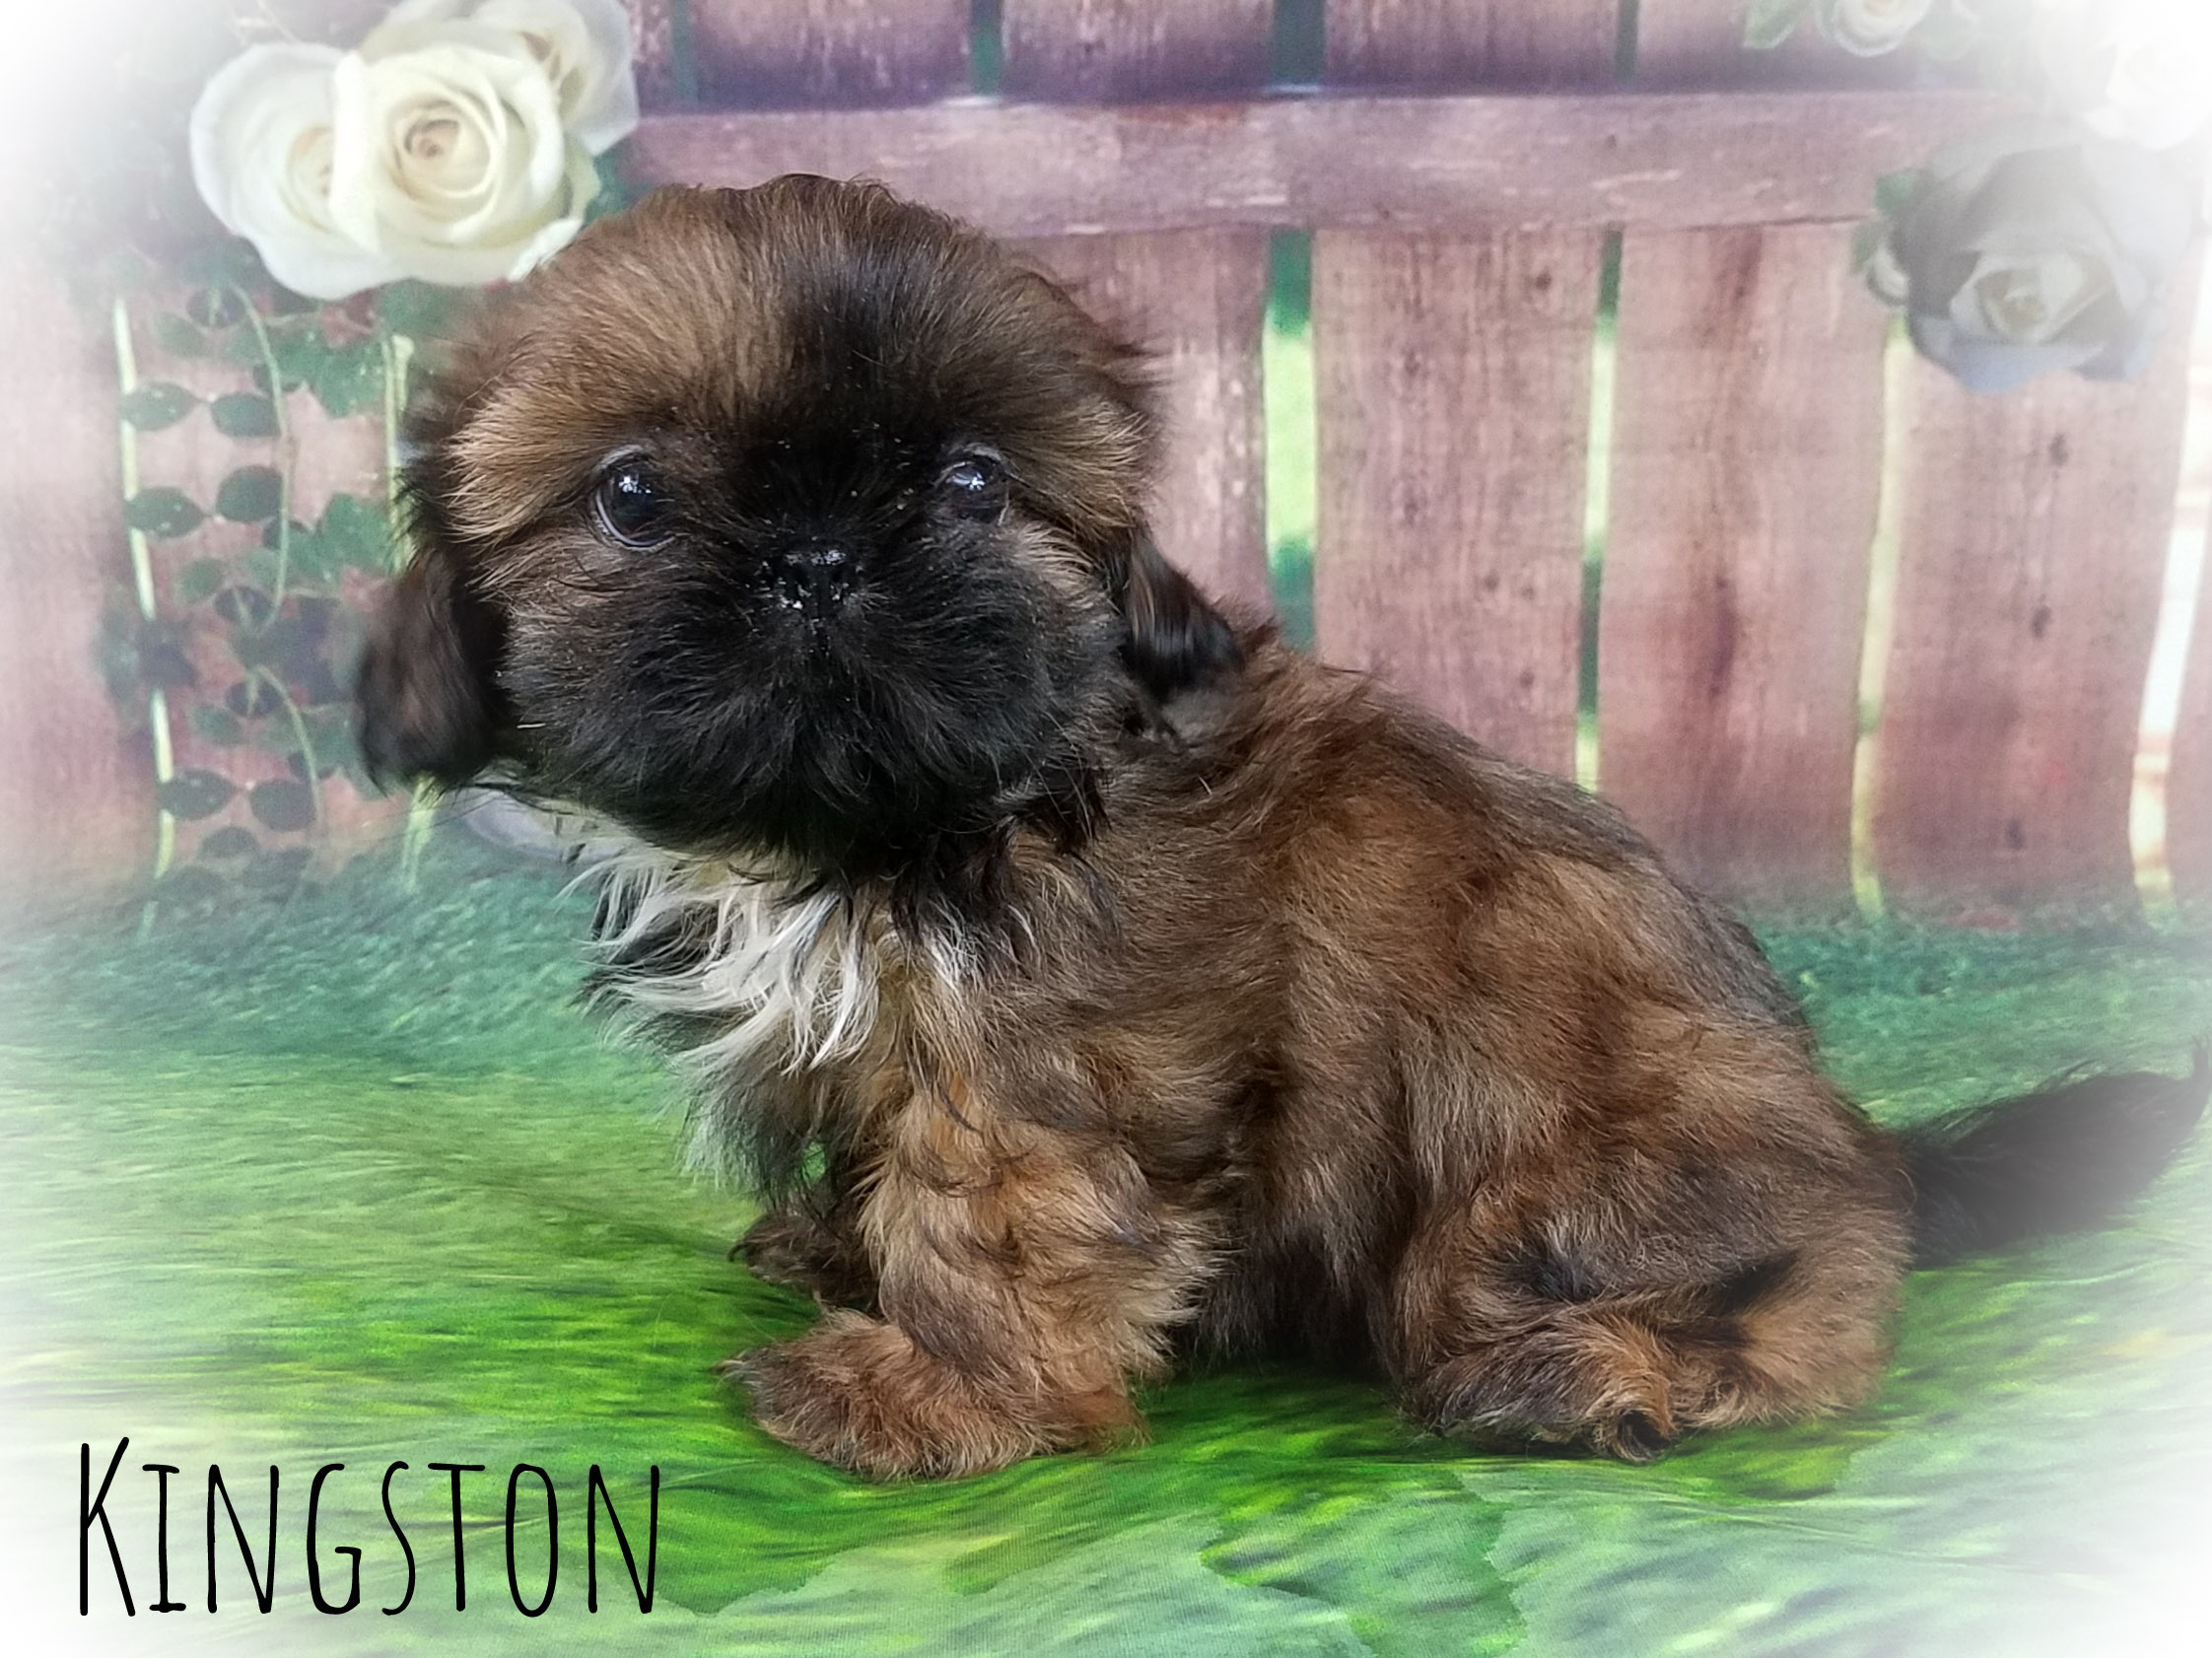 Imperial Shih Tzu Imperial Male Puppy for Sale in Virginia - Kingston